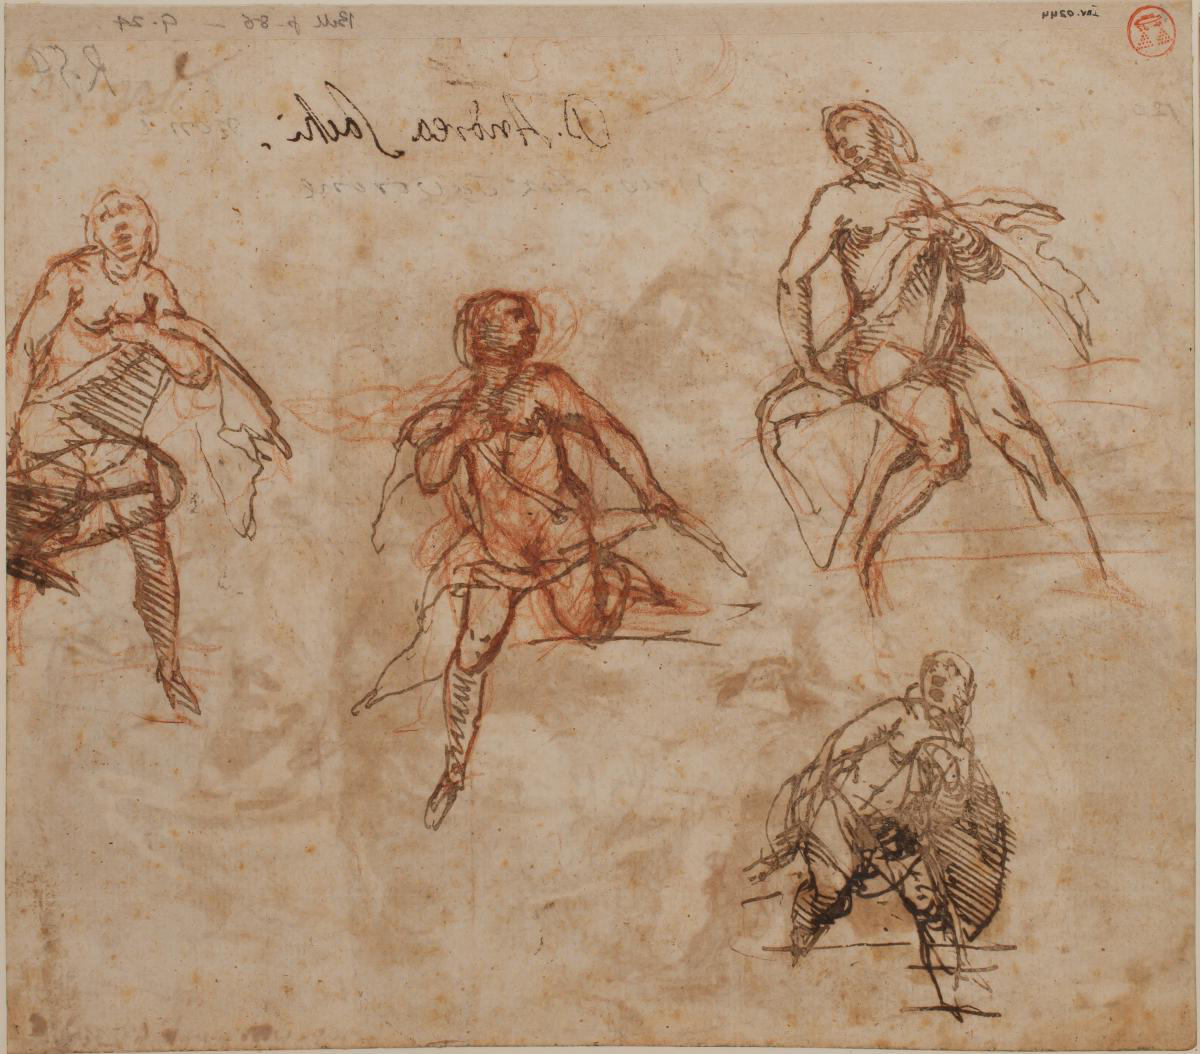 Drawing by Lazzaro Tavarone, 'Four studies for Susanna, or Ba日sheba' (JBS 1241)